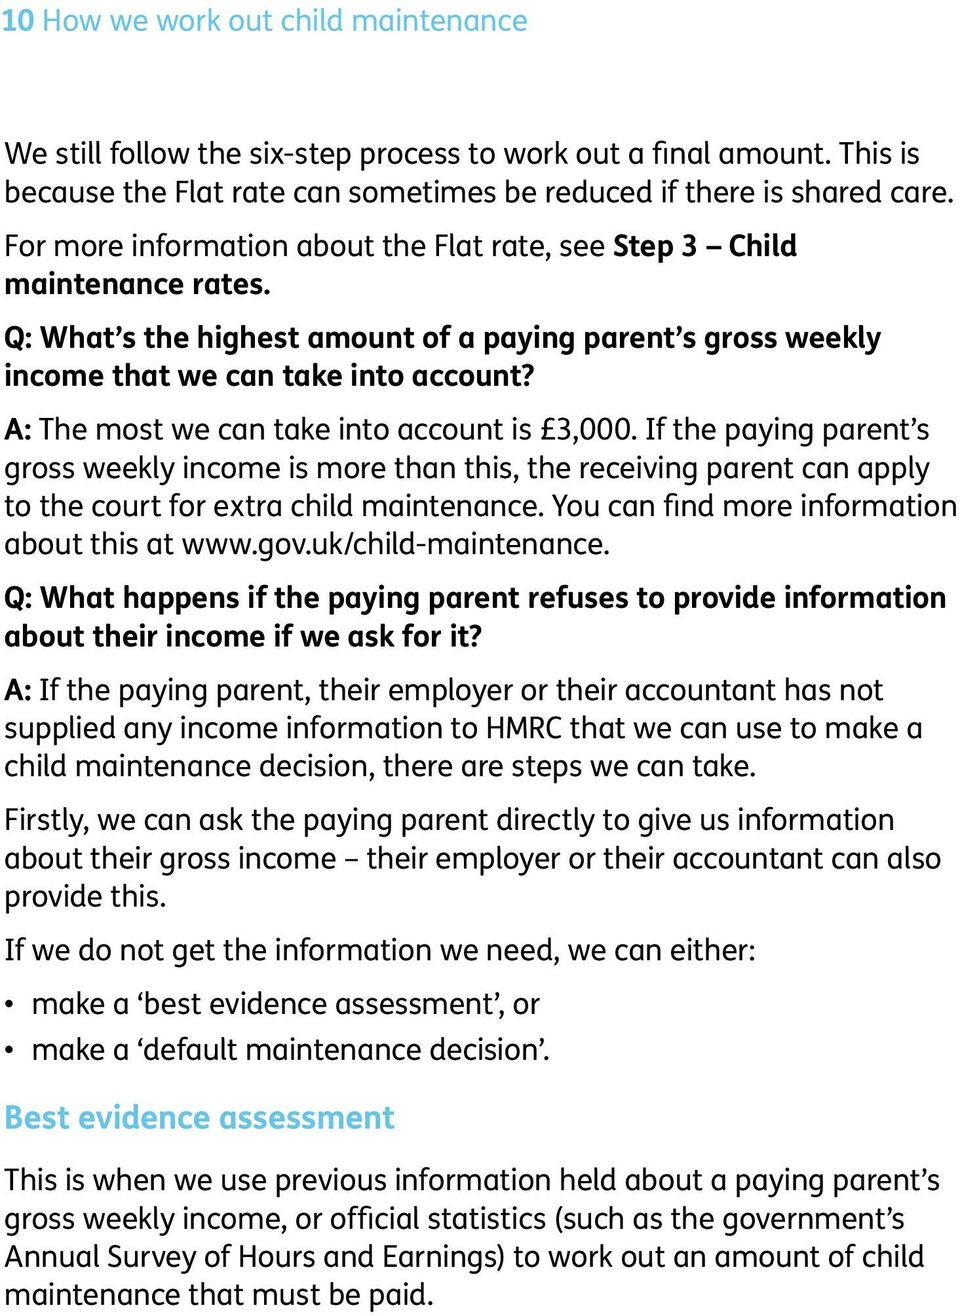 A: The most we can take into account is 3,000. If the paying parent s gross weekly income is more than this, the receiving parent can apply to the court for extra child maintenance.